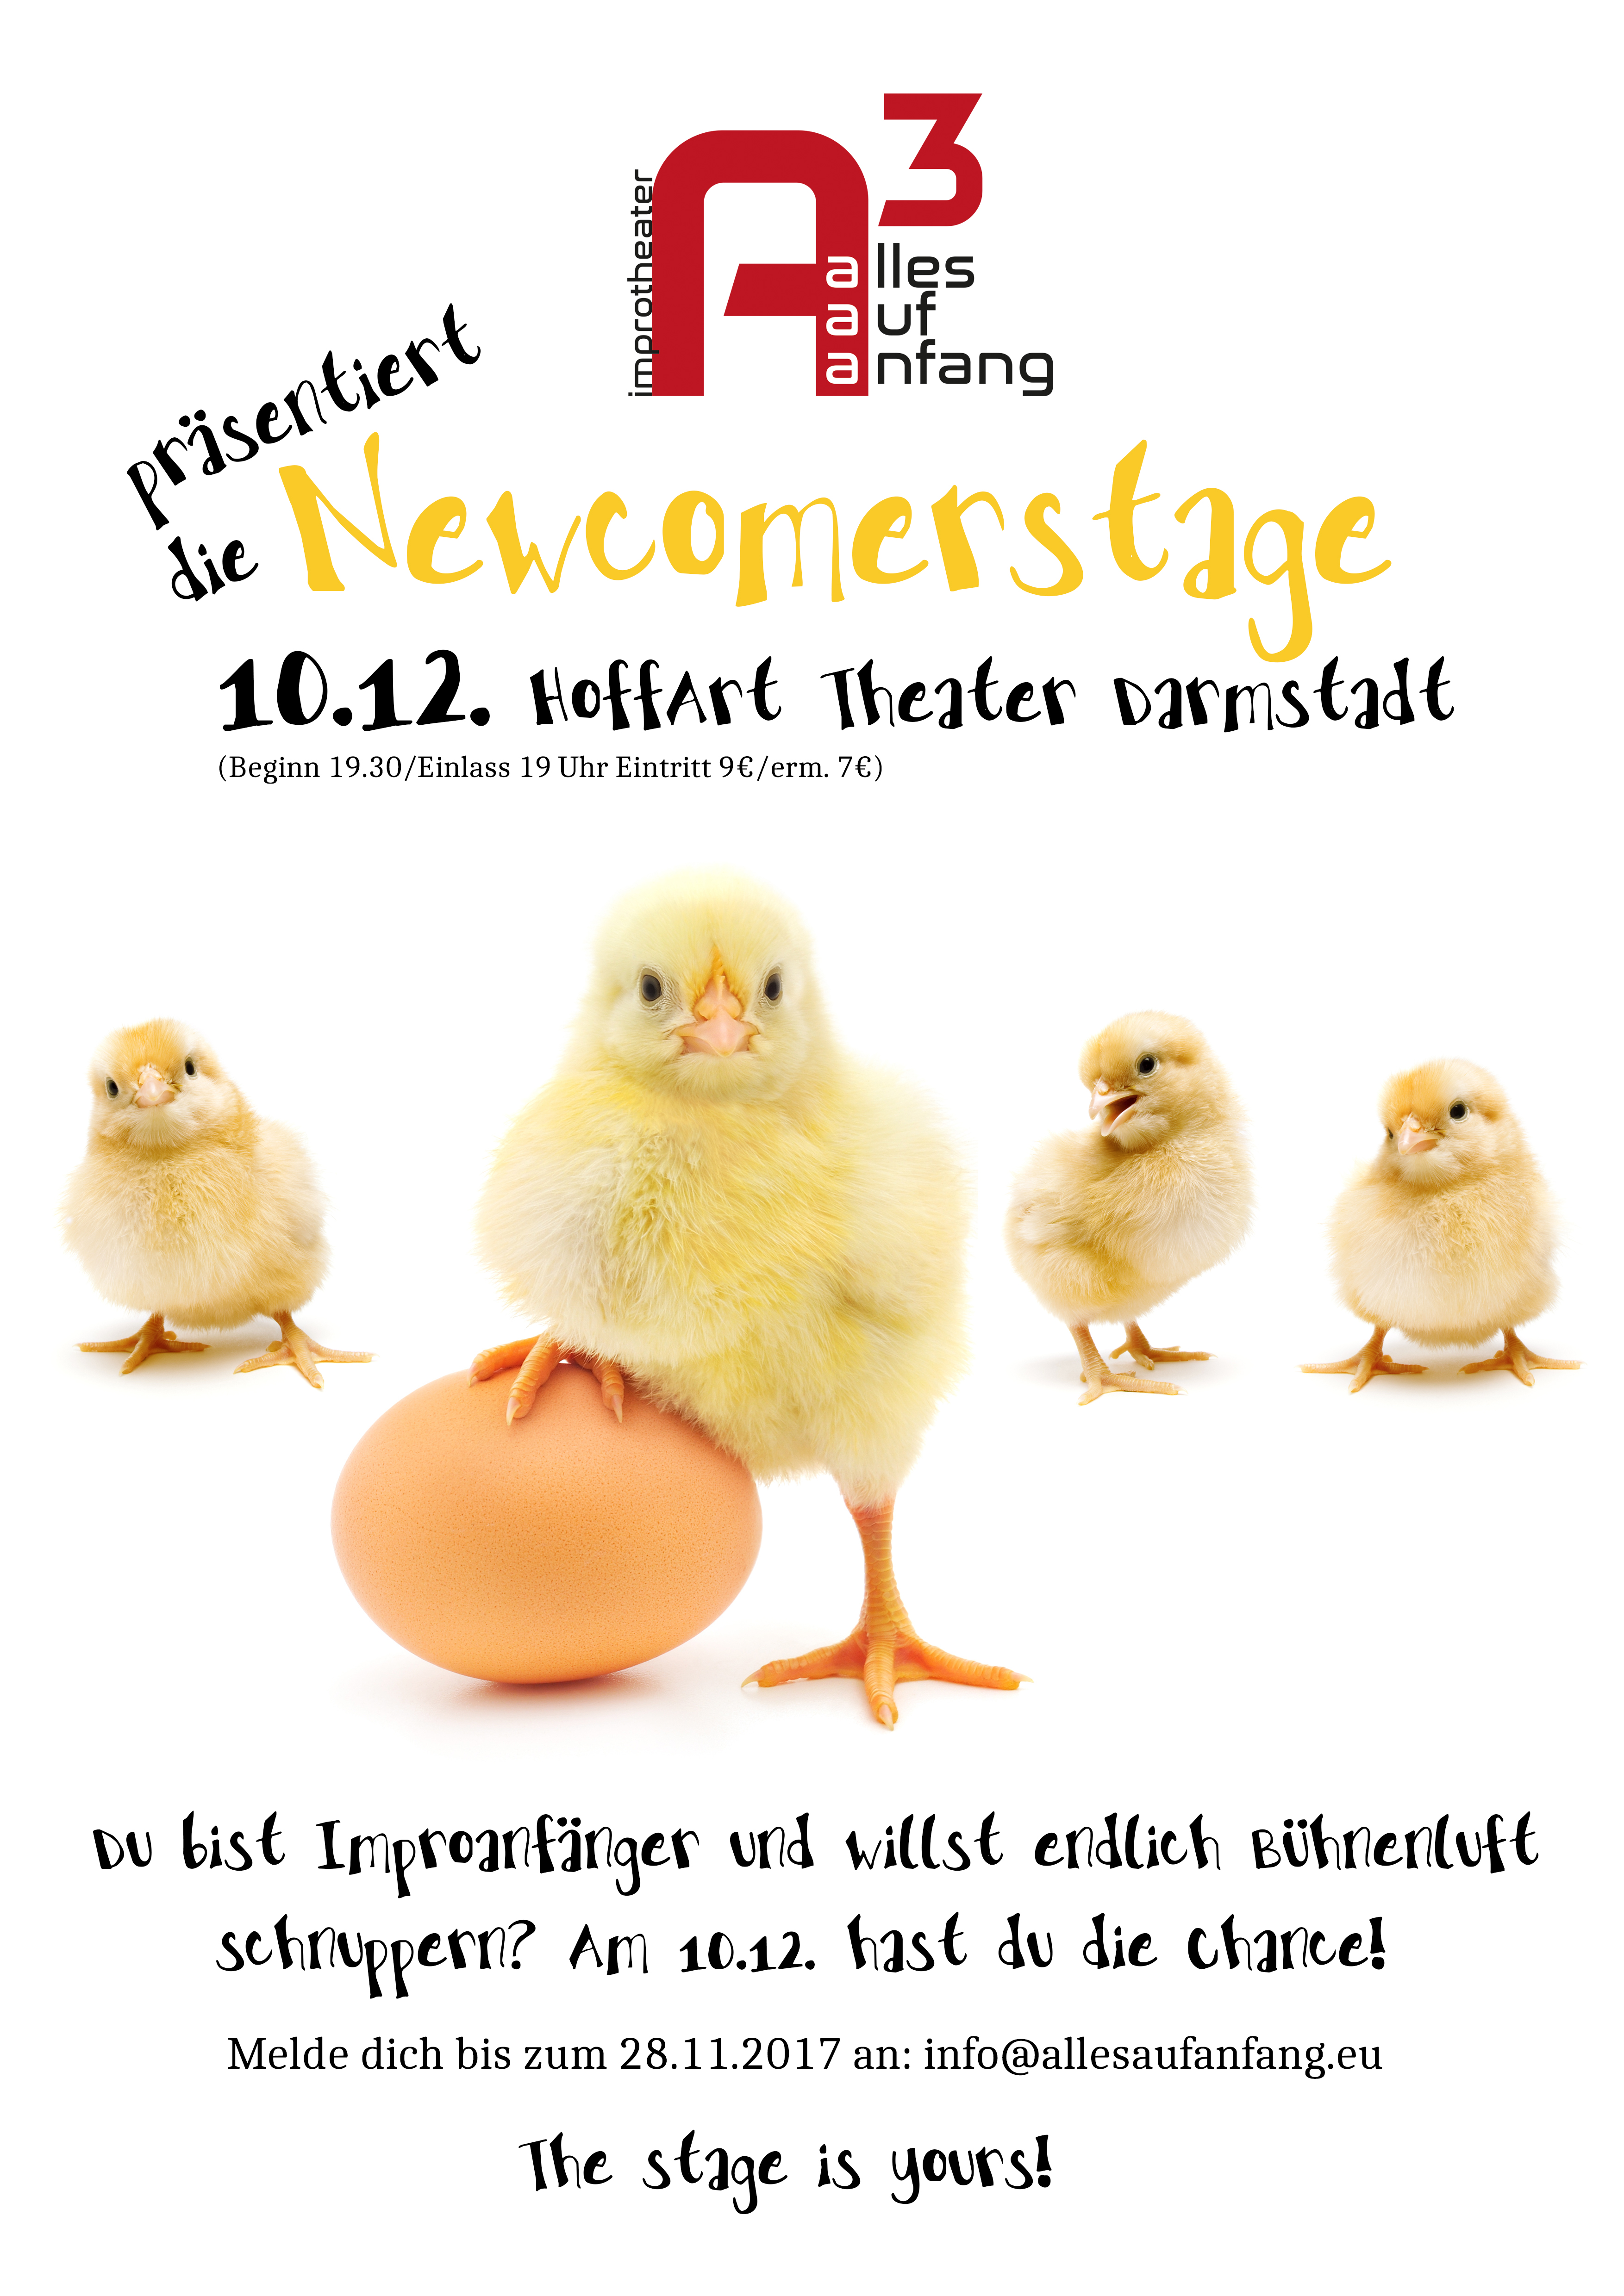 Alles Auf Anfang-Newcomer Stage